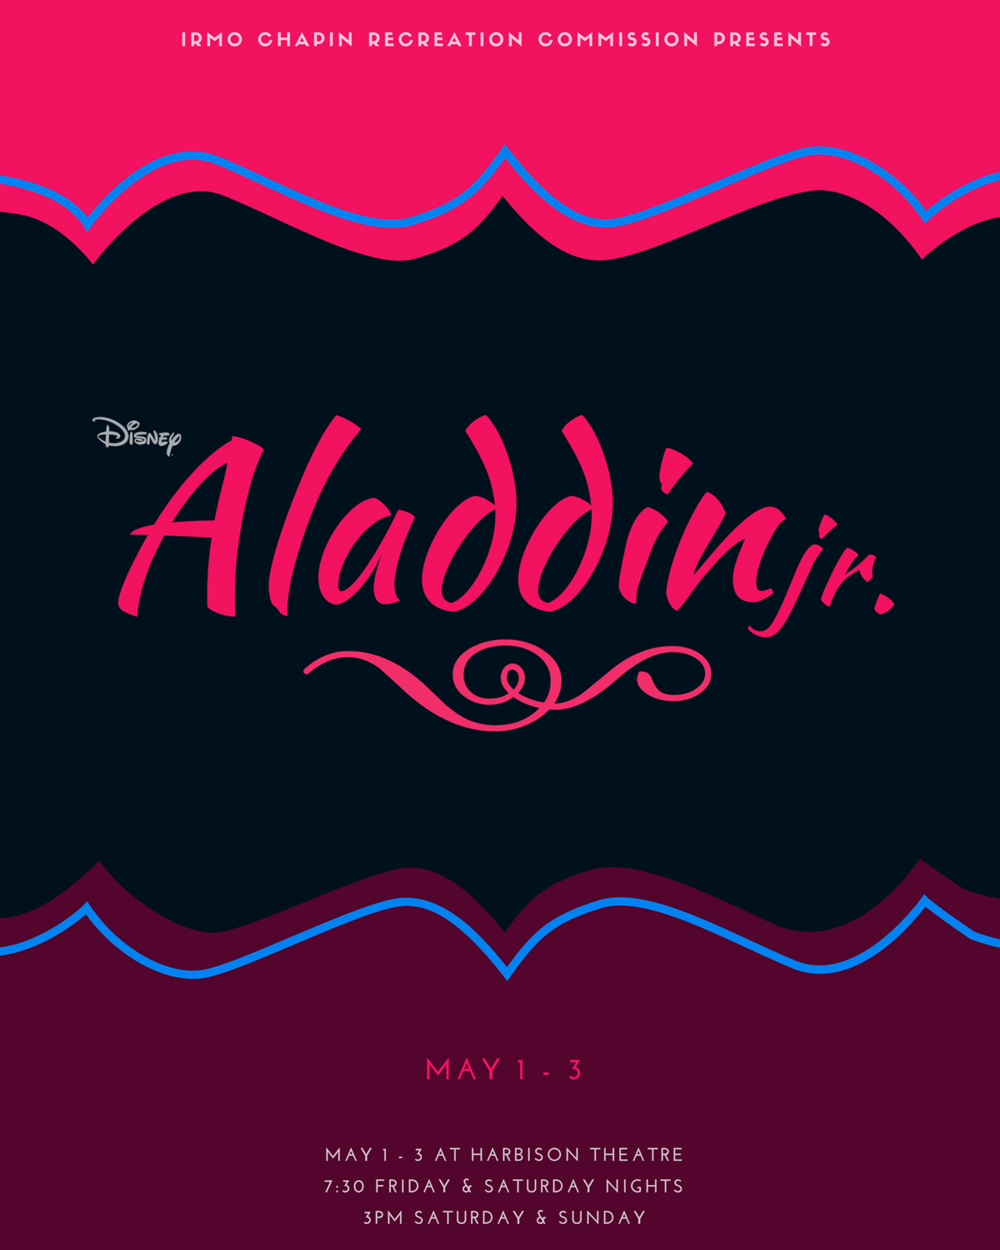 aladdin-jr-poster-design